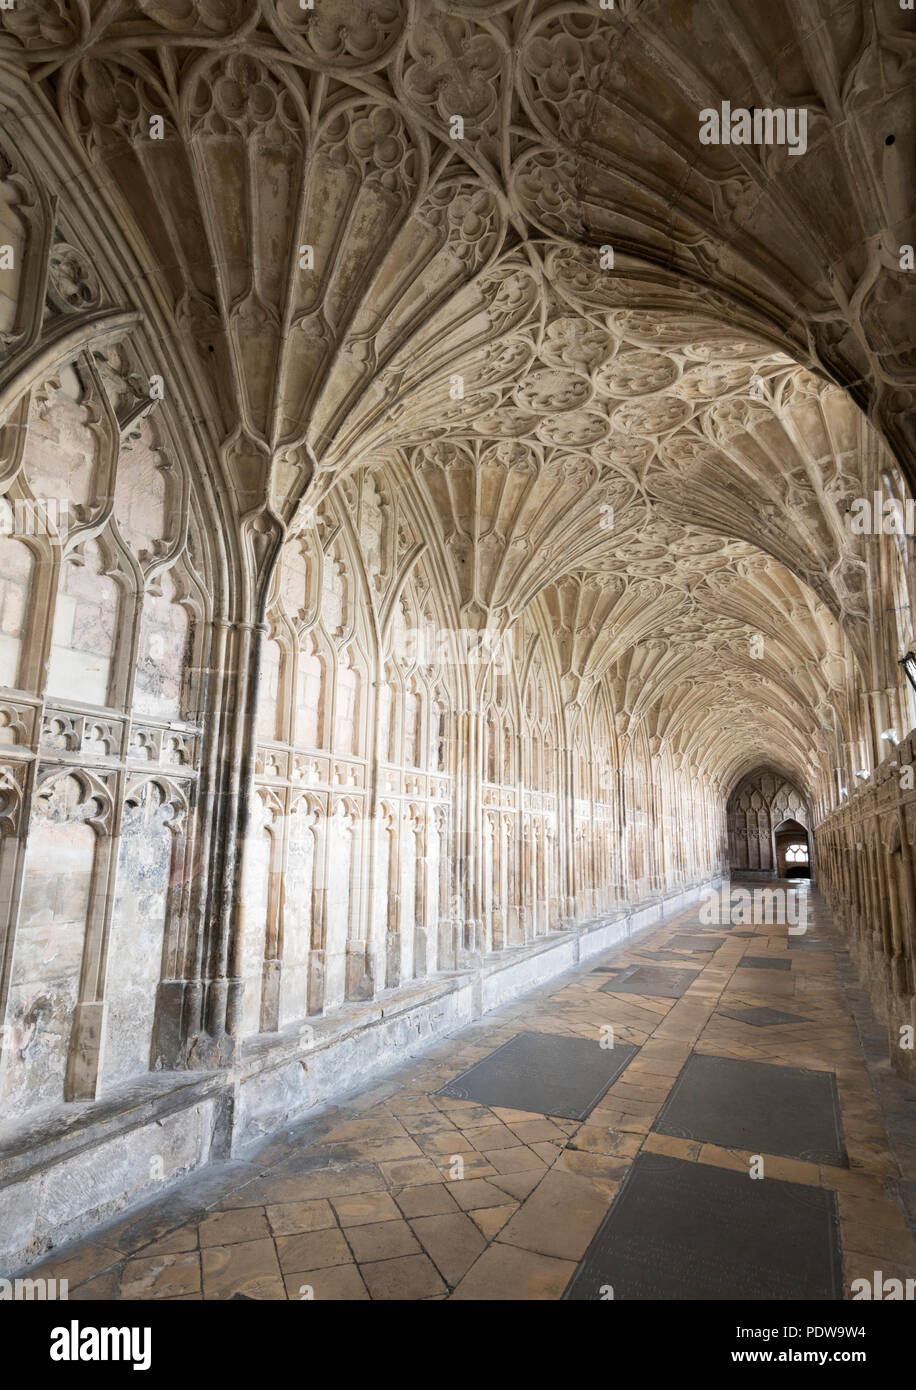 Fan vaulting within the cloister of Gloucester cathedral, England, UK - Stock Image